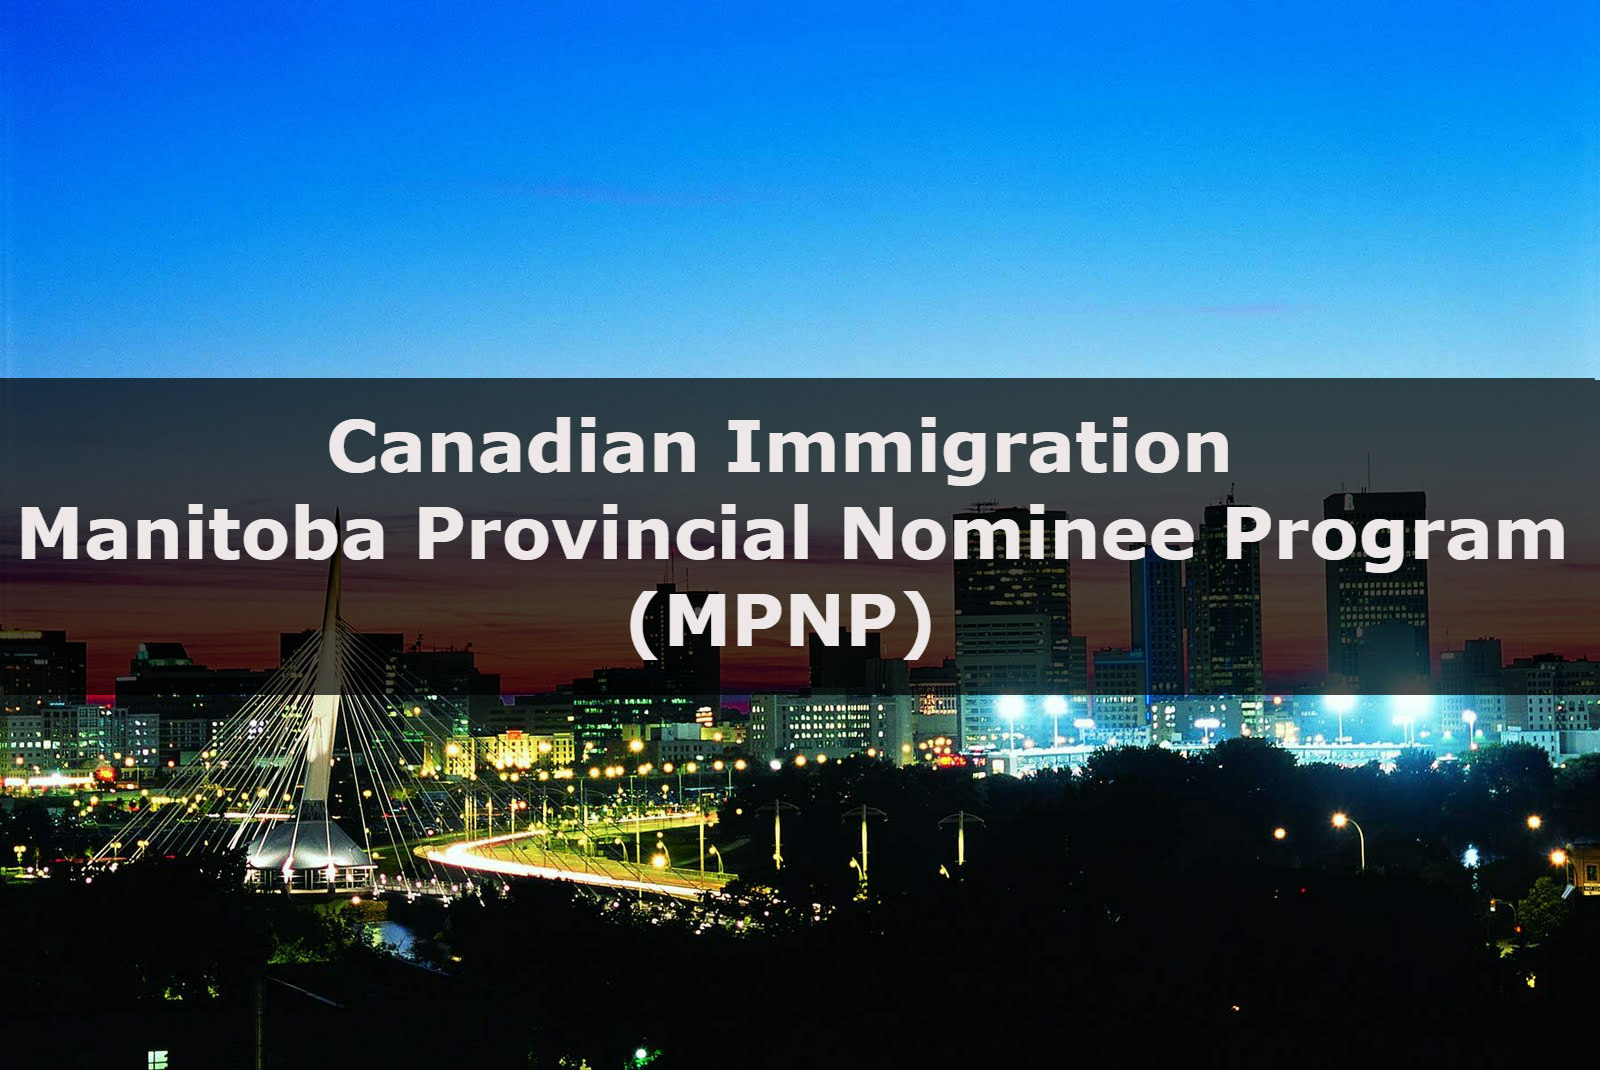 Canadian Immigration – Manitoba Provincial Nominee Program (MPNP)